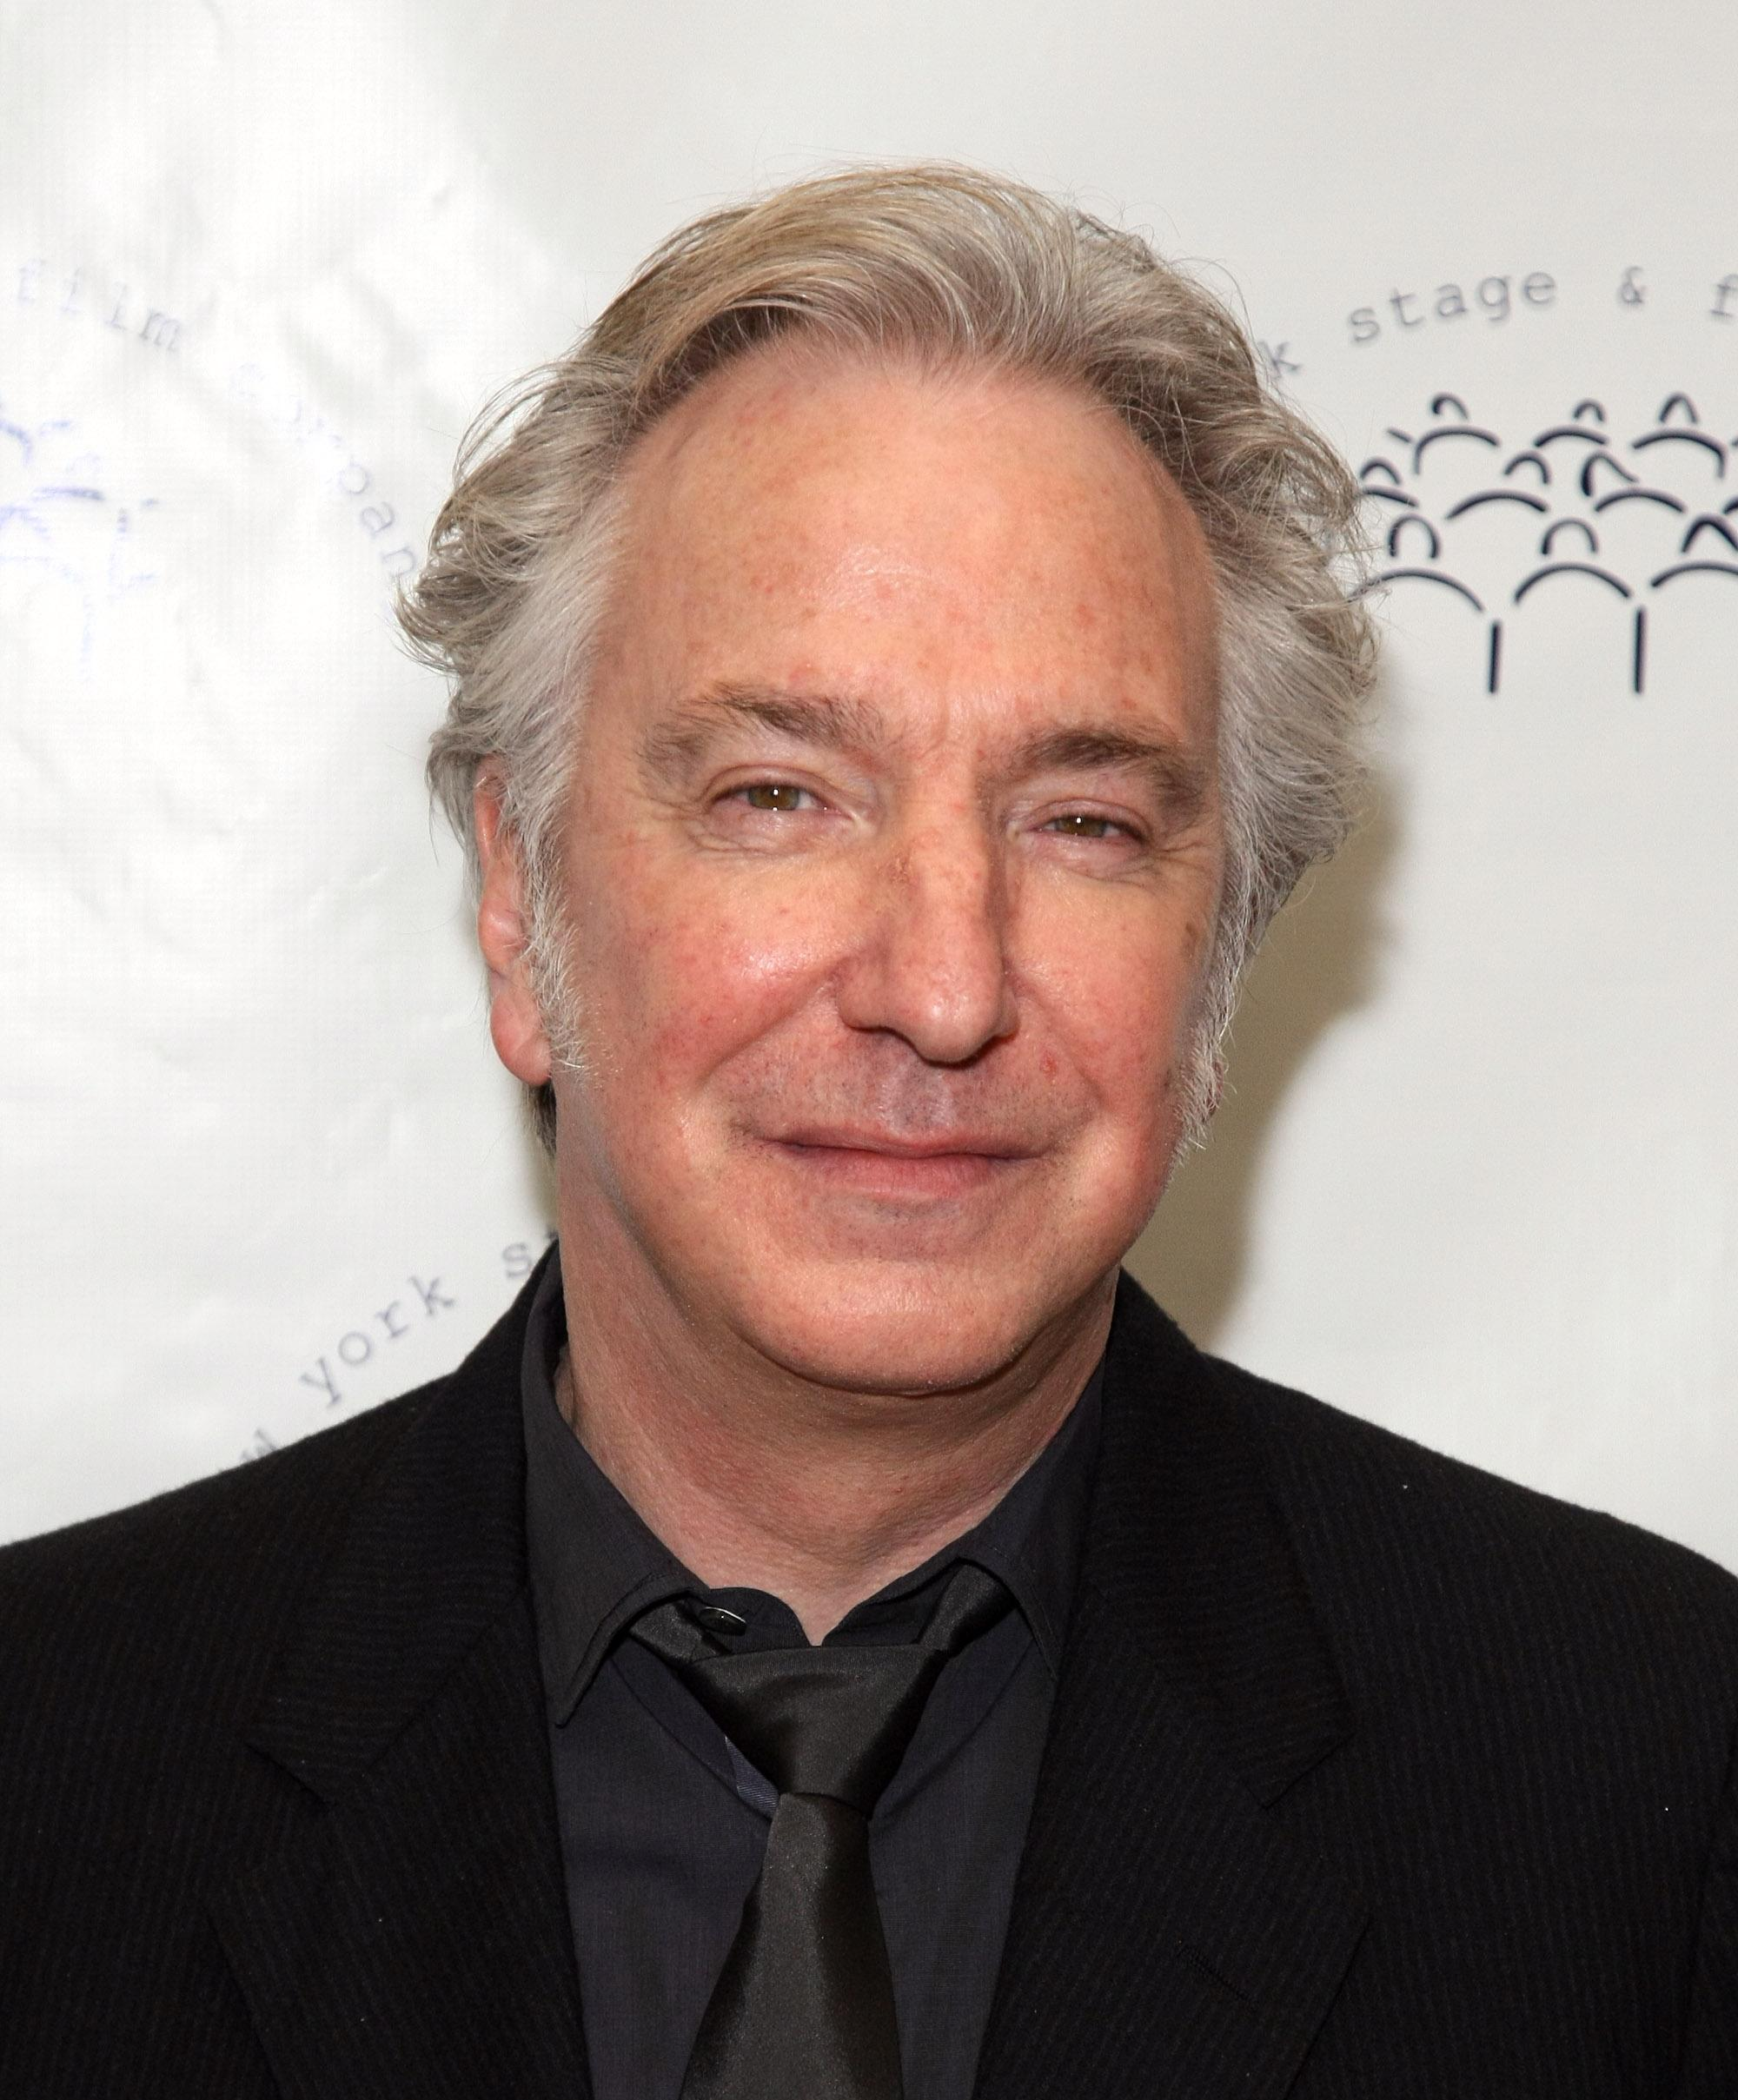 alan rickman s diaries to be published into a book